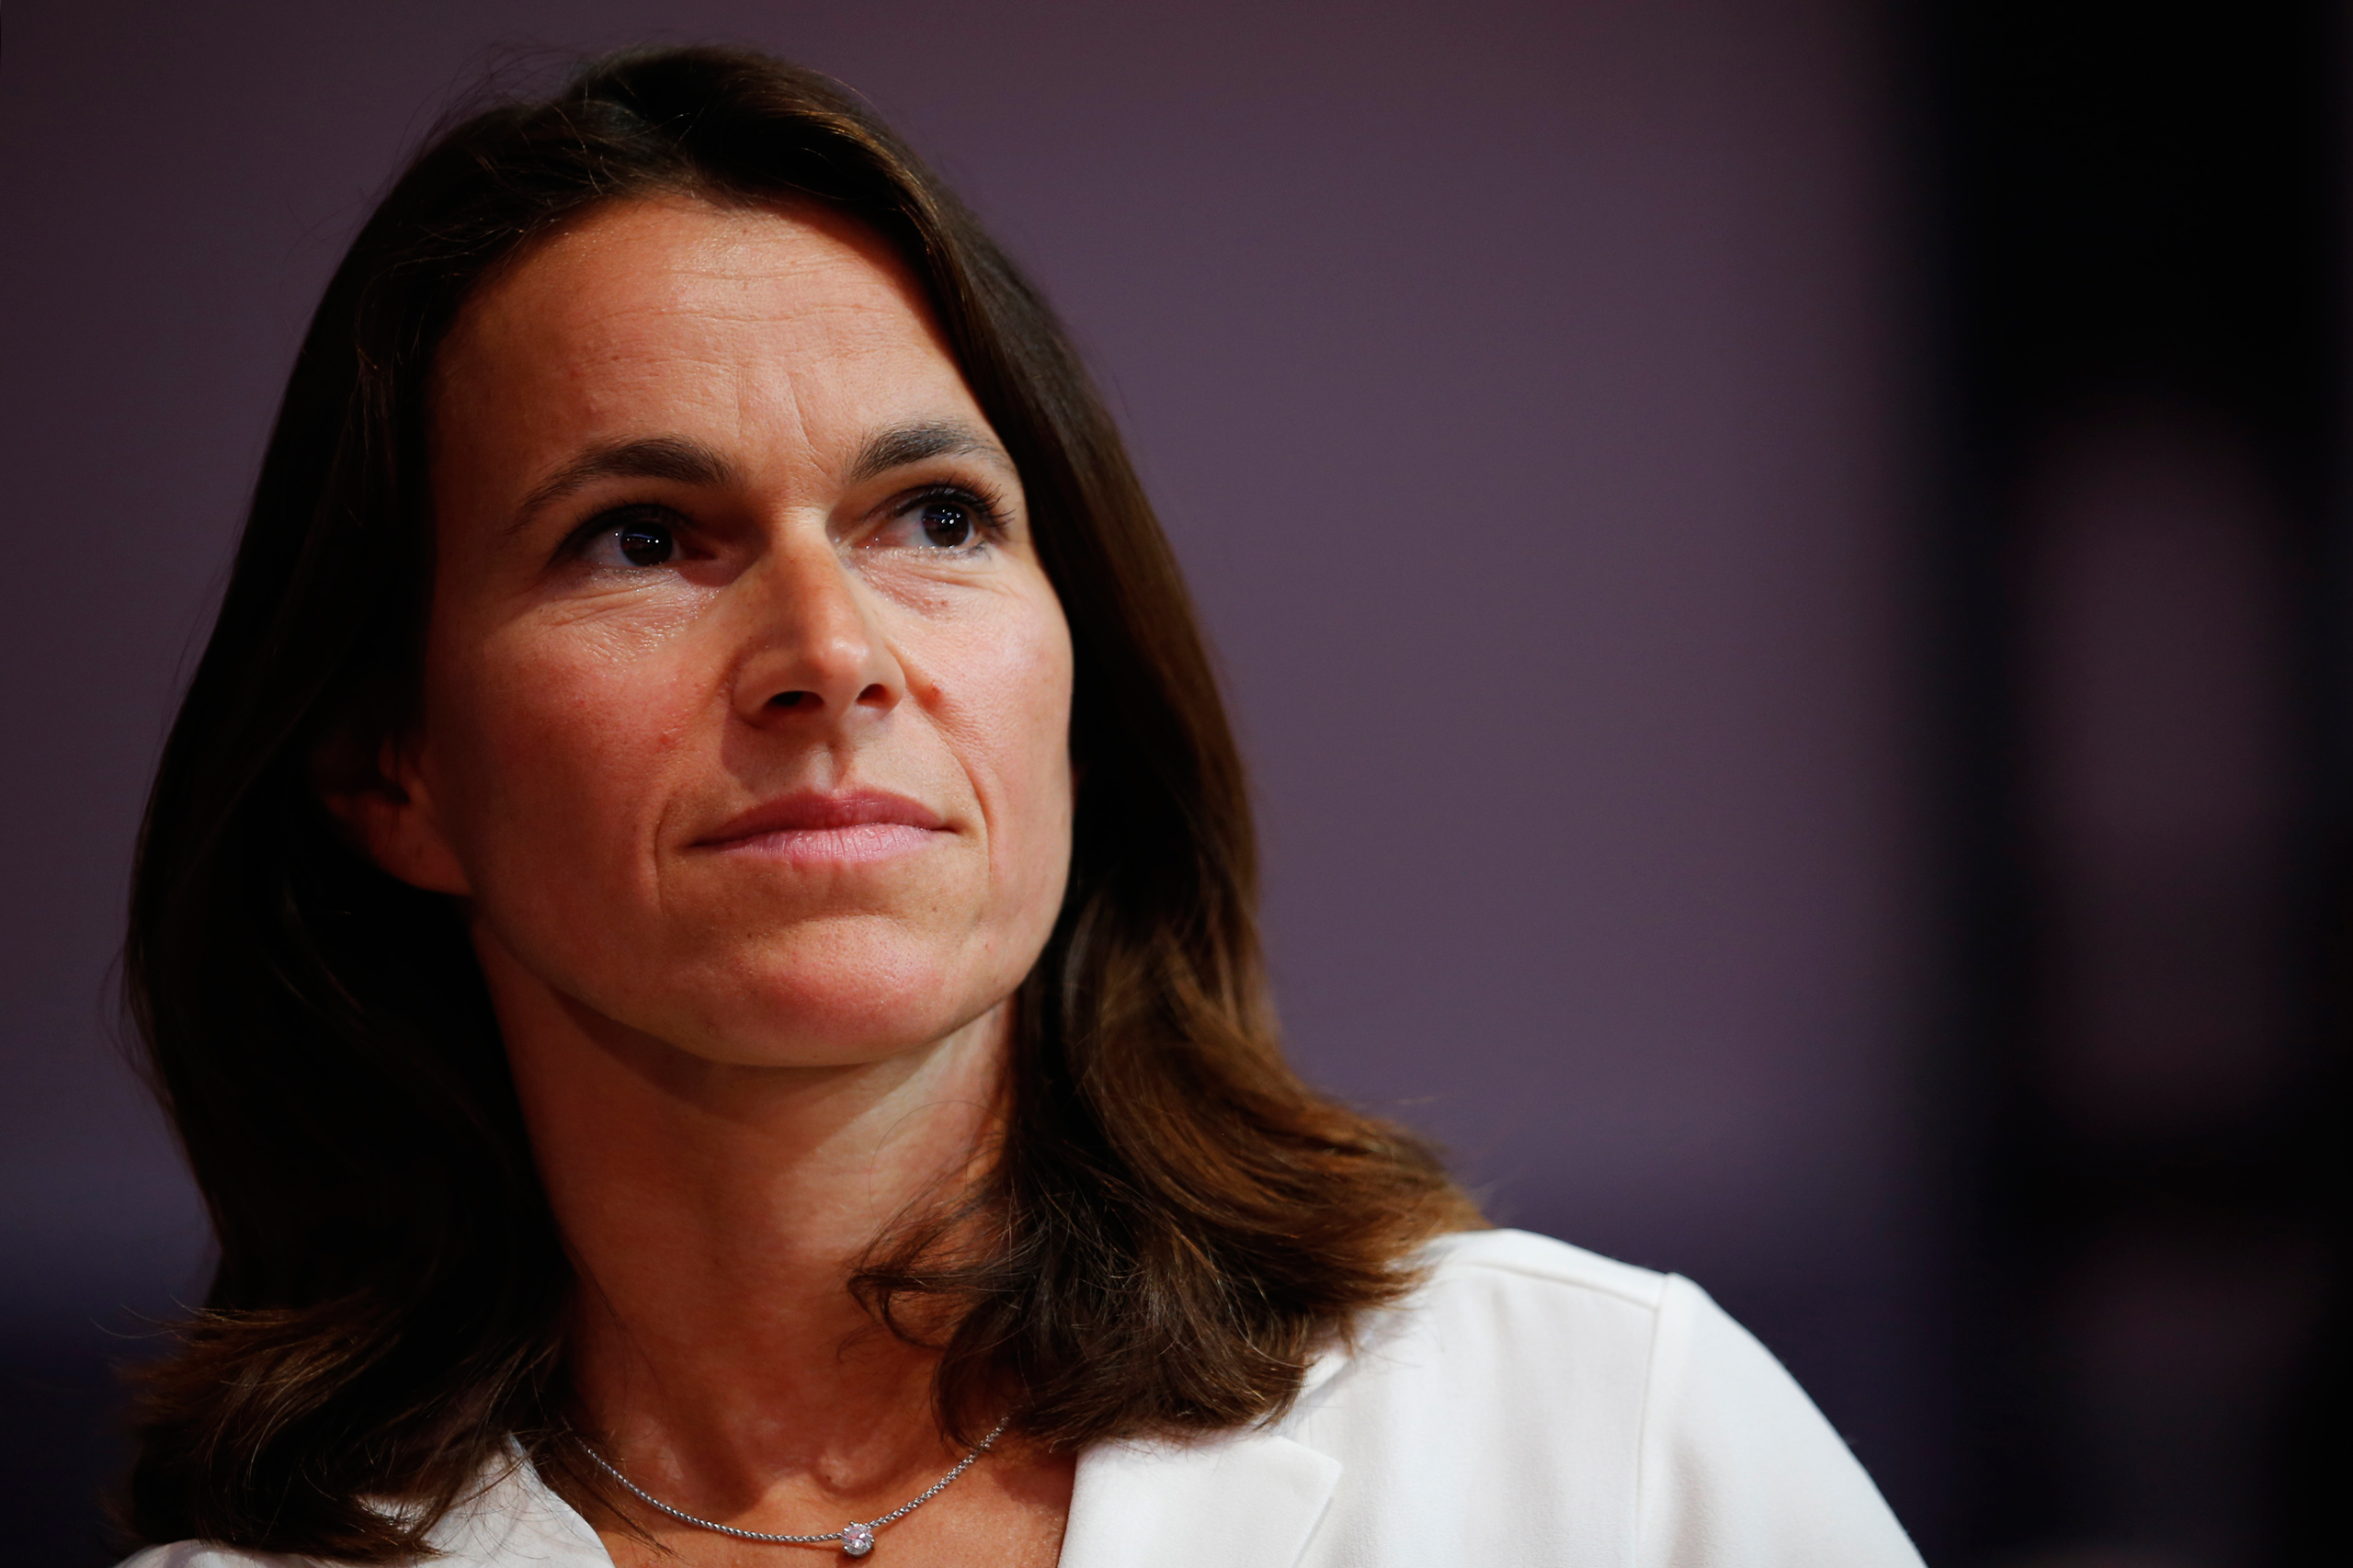 French Culture Minister Aurelie Filippetti, attends the Socialist Party's  Universite d'ete  summer meeting in La Rochelle, France, Aug. 30, 2014.